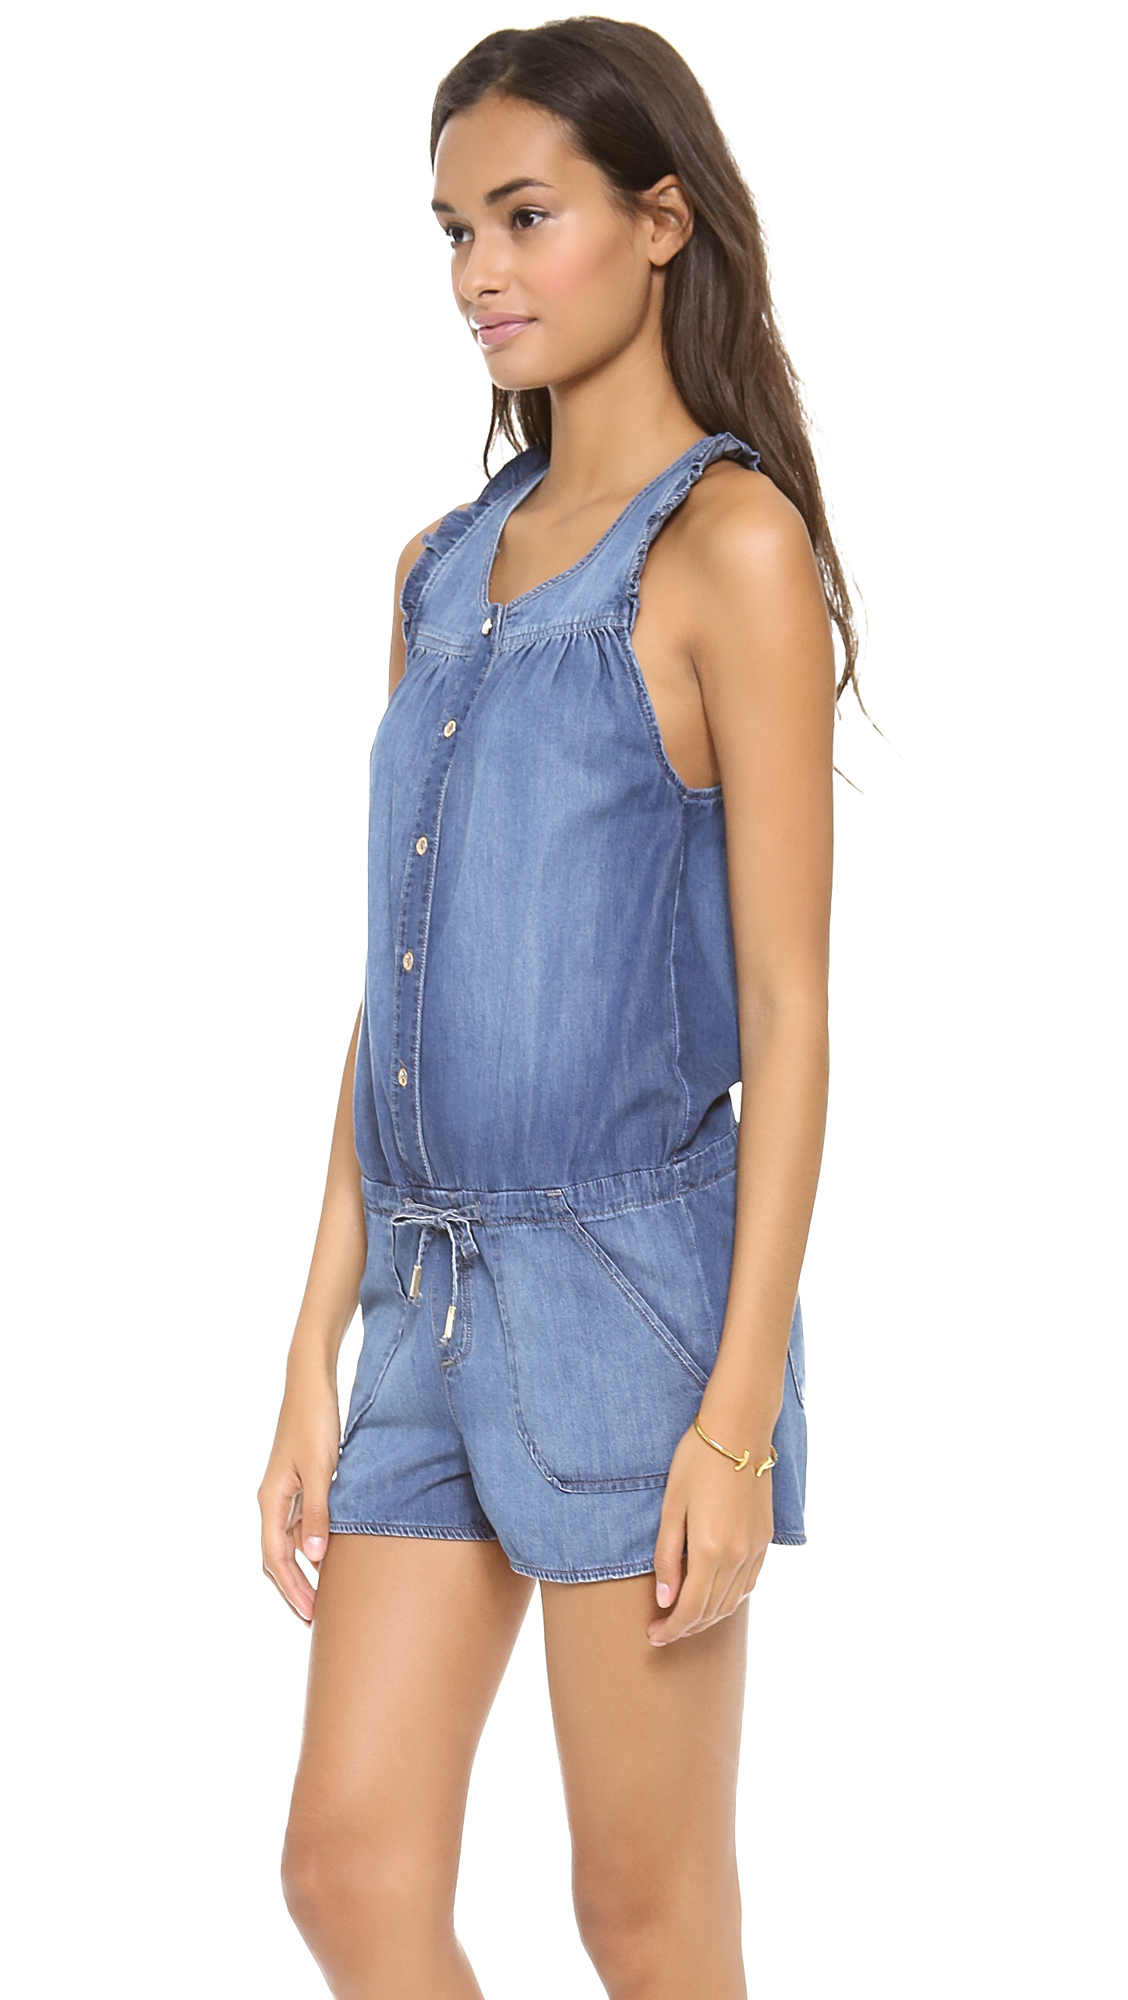 Juicy couture denim romper medium vintage wash in blue for Couture garments